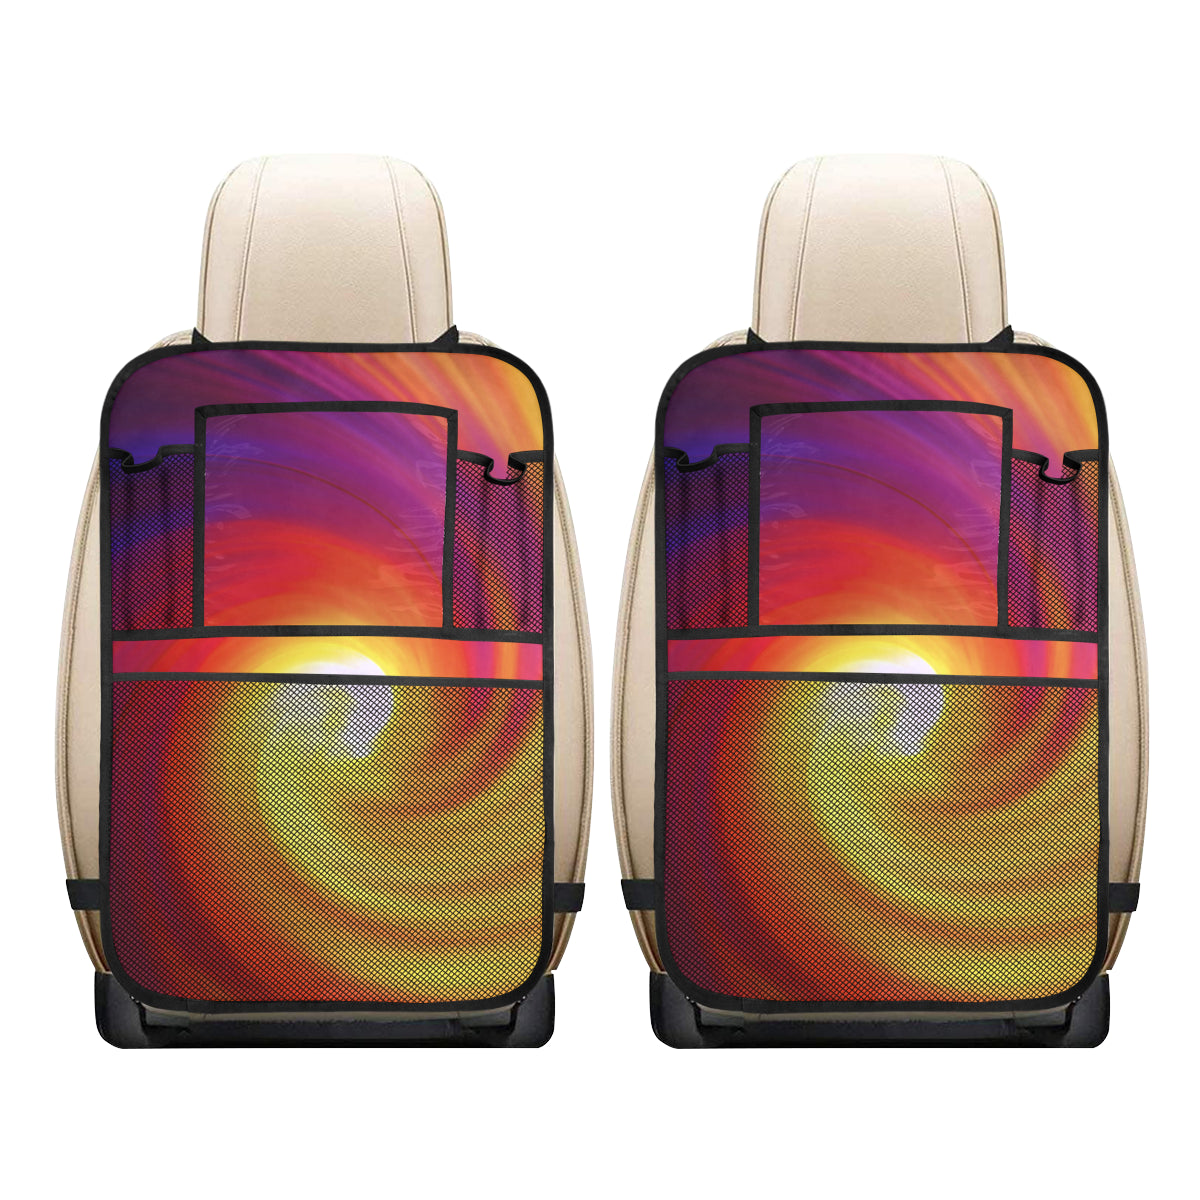 Vortex Twist Swirl Flame Themed Car Back Seat Organizer